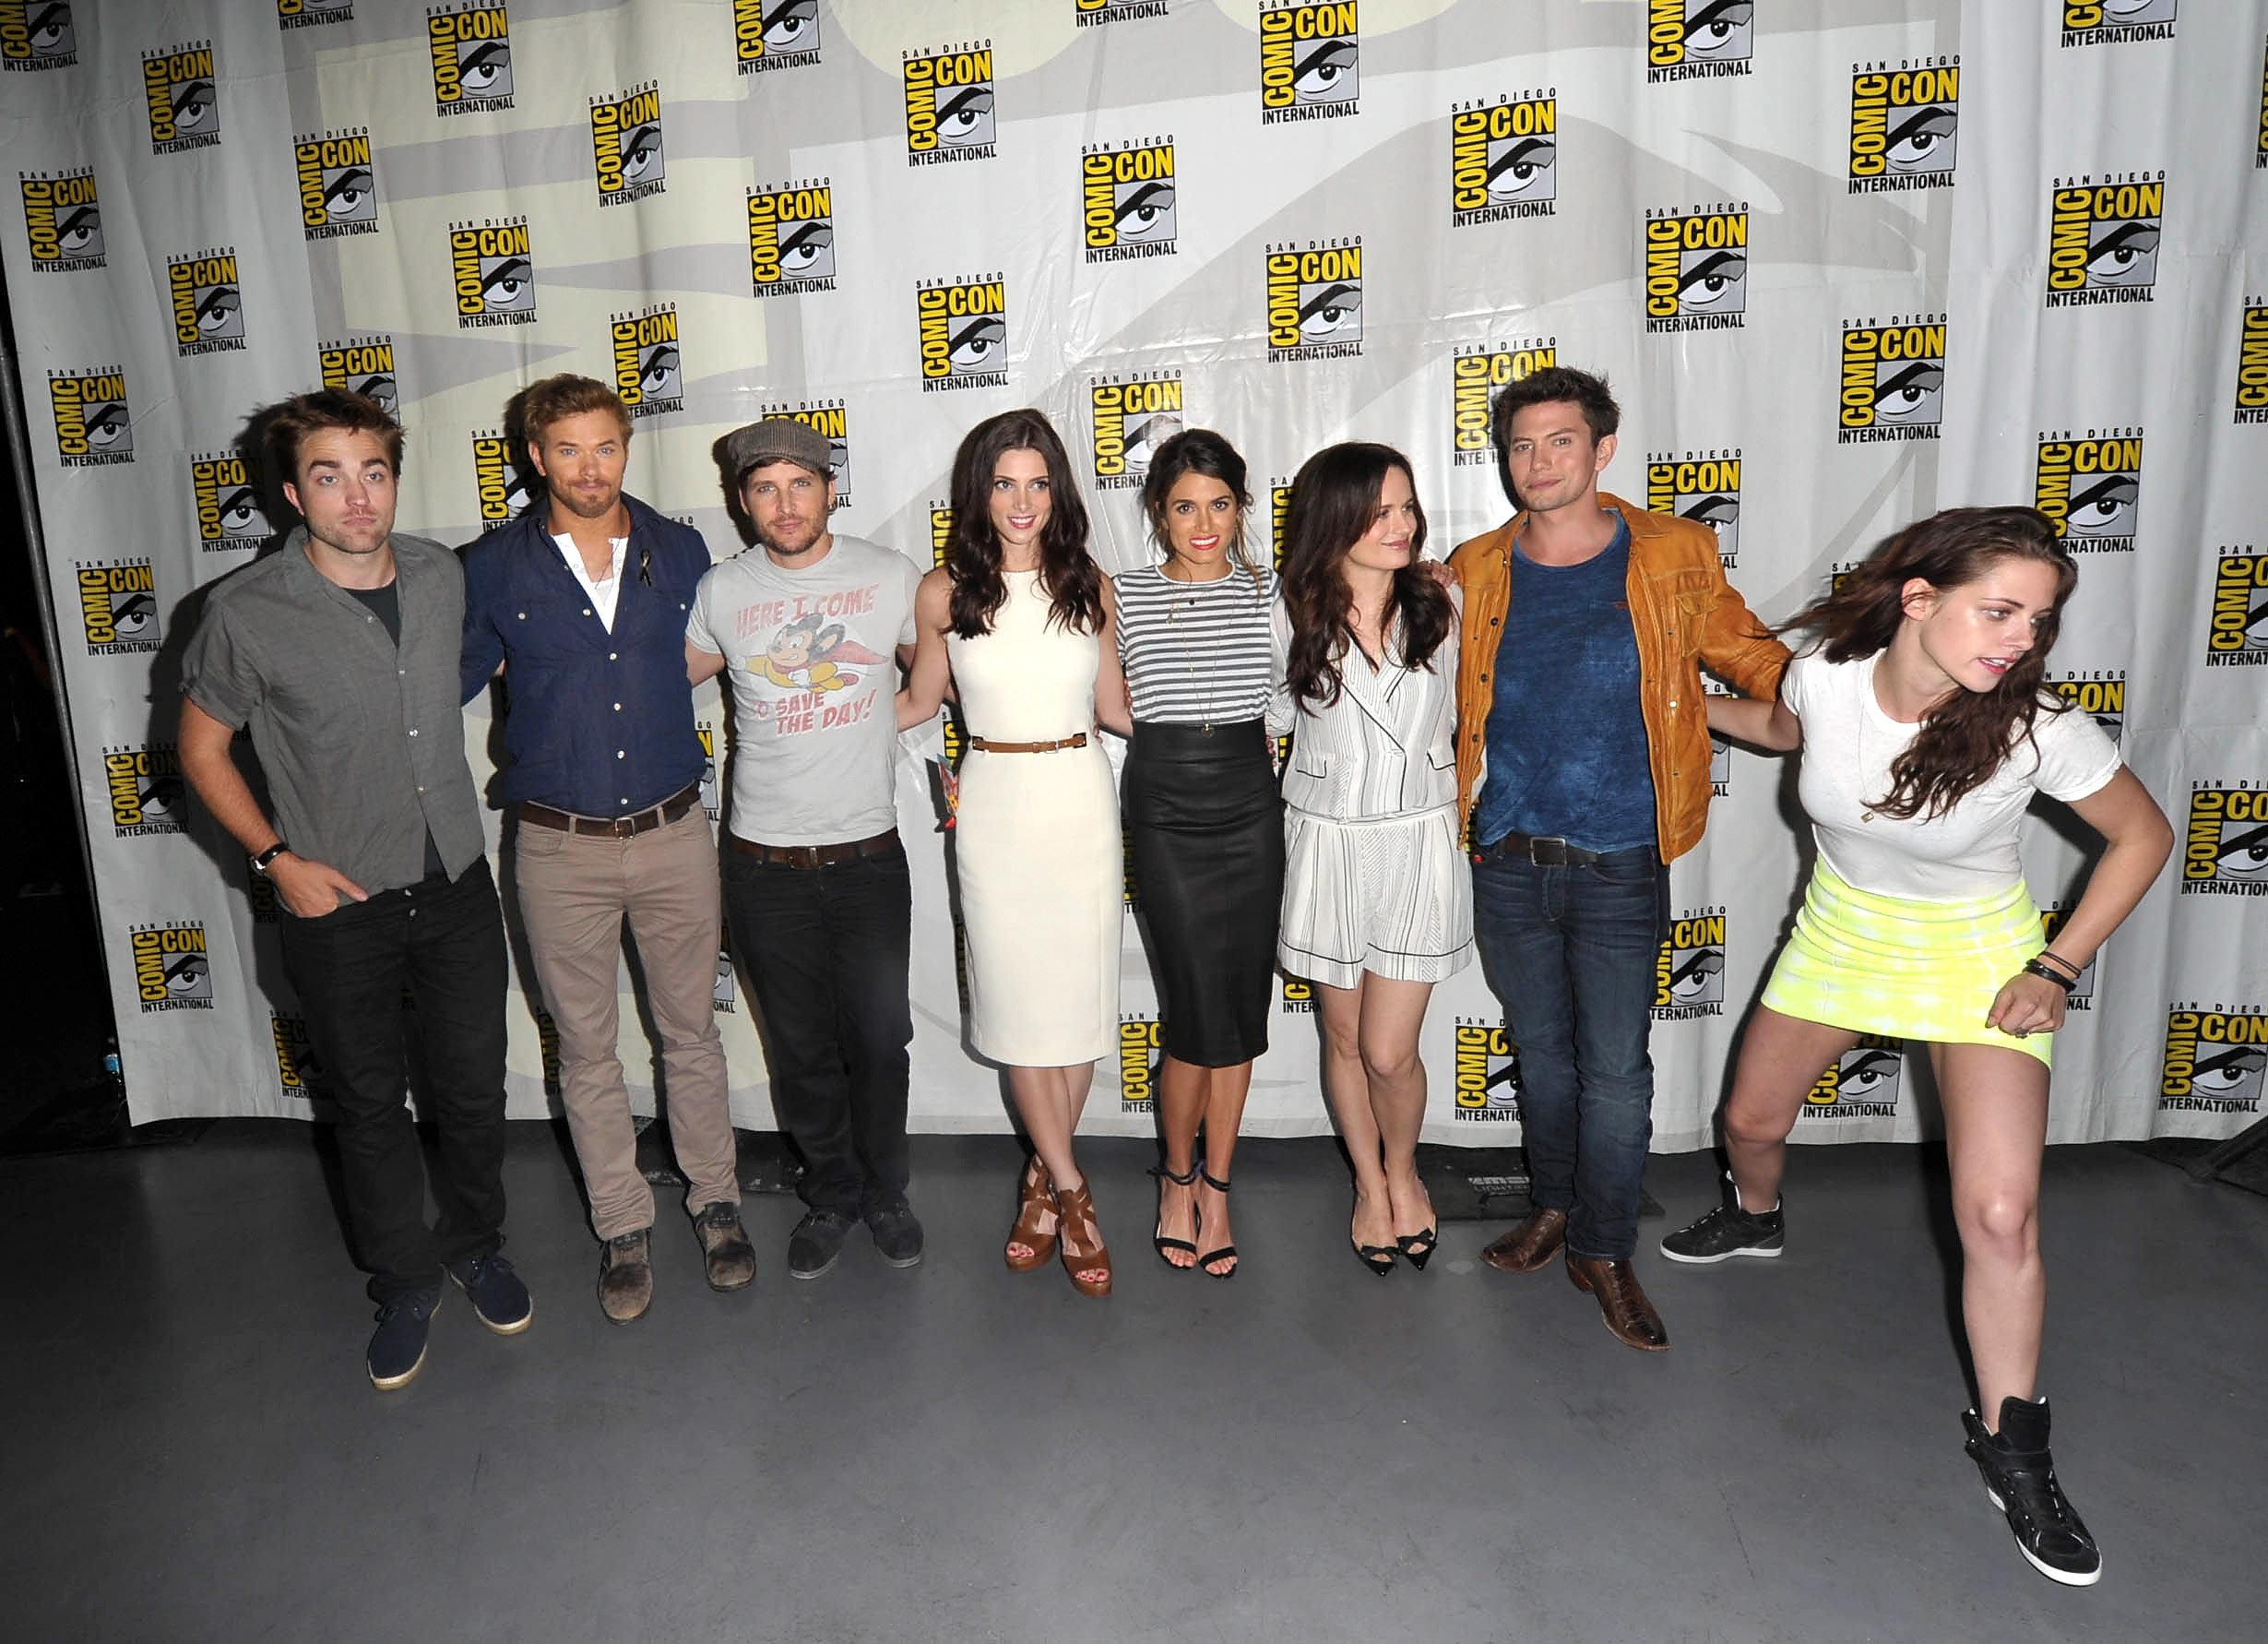 The cast of The Twilight Saga: Breaking Dawn participate in Comic-Con International in San Diego on July 12, 2012